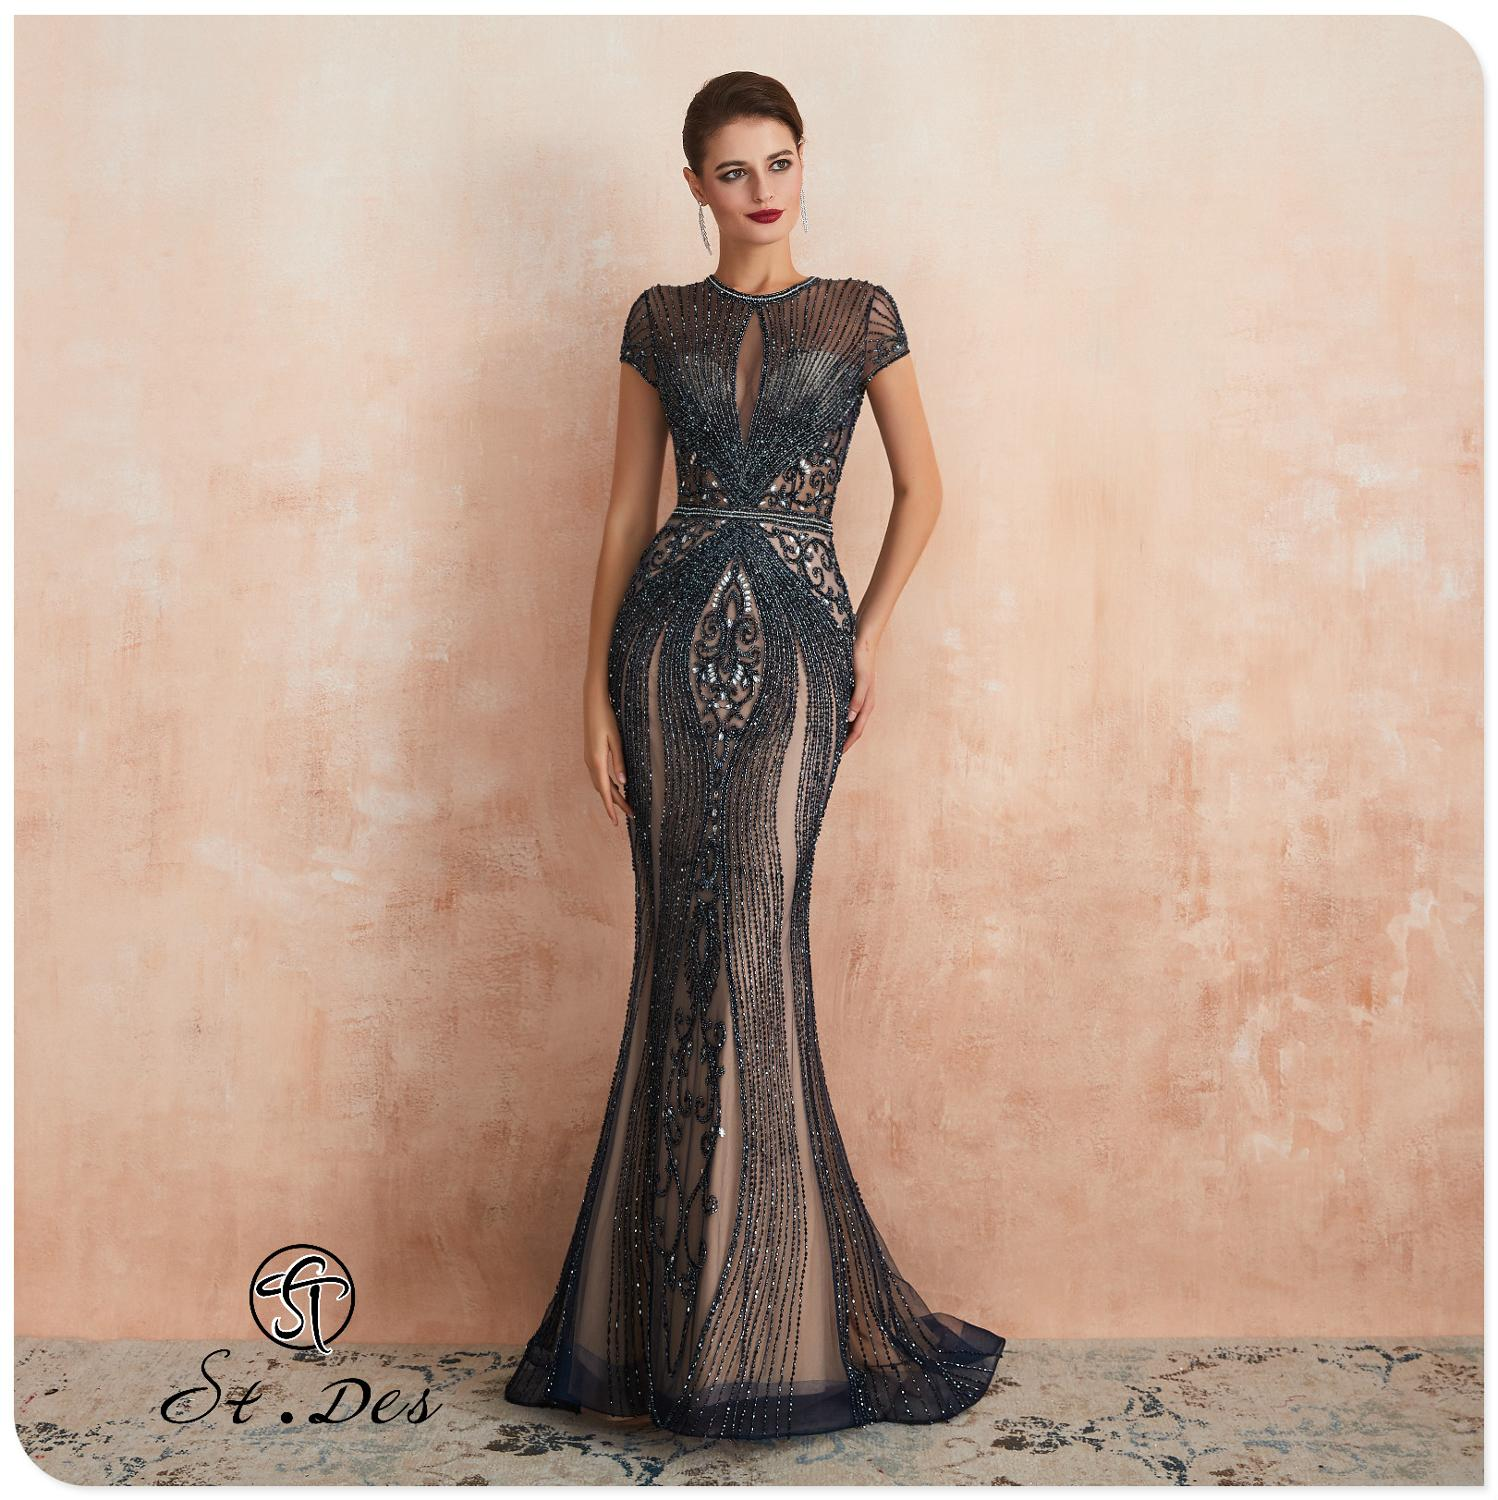 NEW Arrival 2020 St.Des Mermaid O-Neck Russian Champagne Grey Sequins Designer Floor Length Evening Dress Party Dress Party Gown